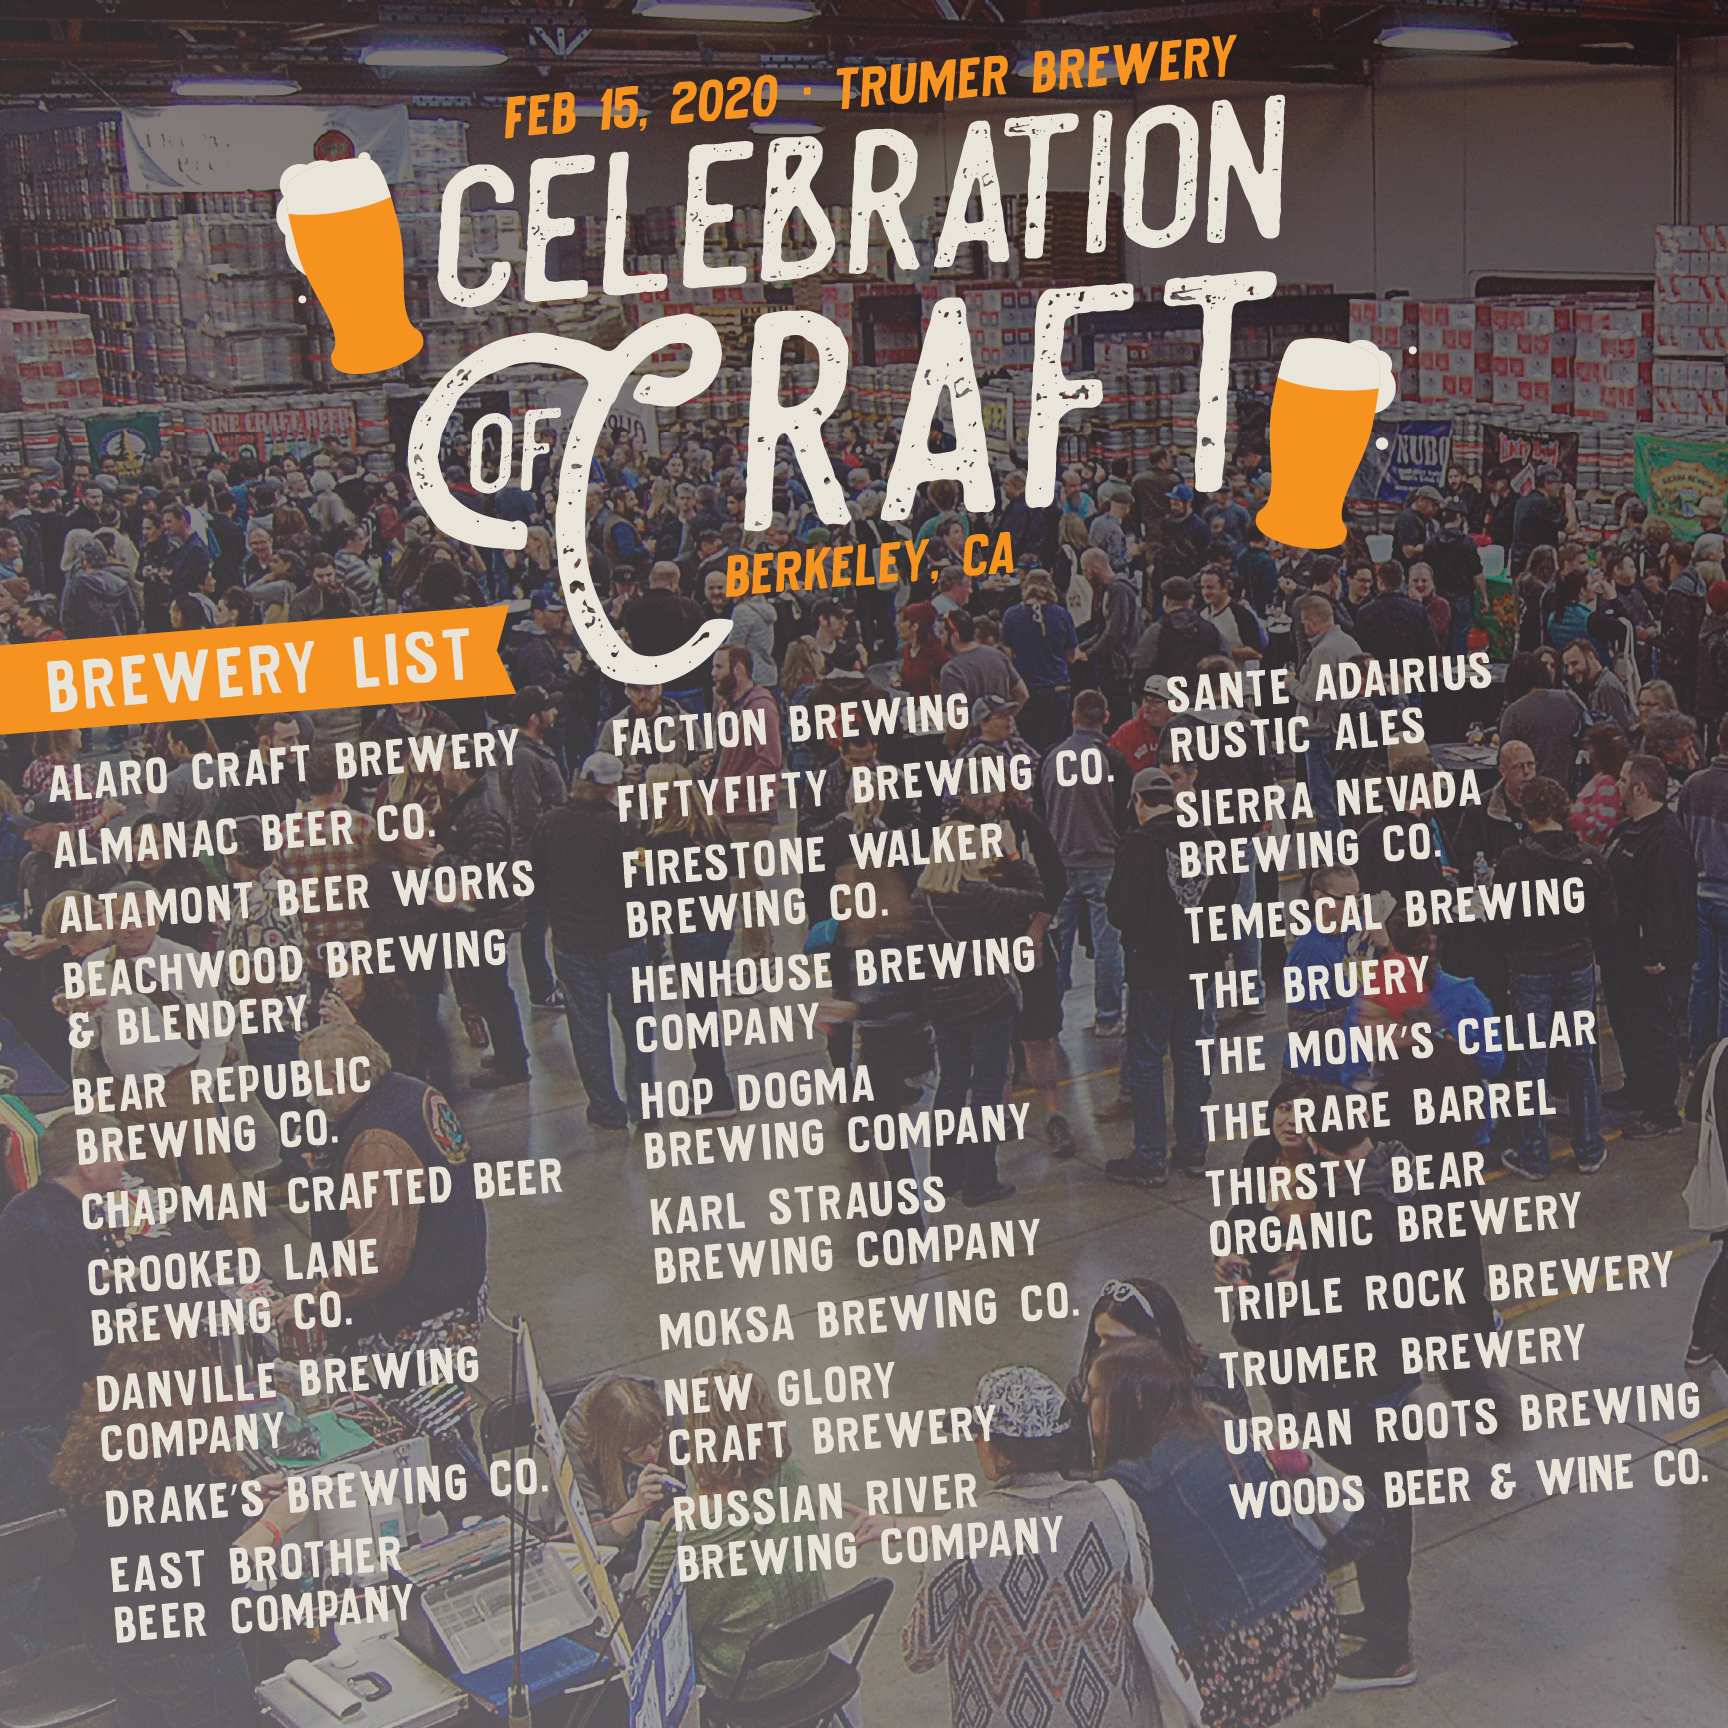 Complete Brewery List Released for the 2020 Celebration of Craft in Berkeley, February 15th